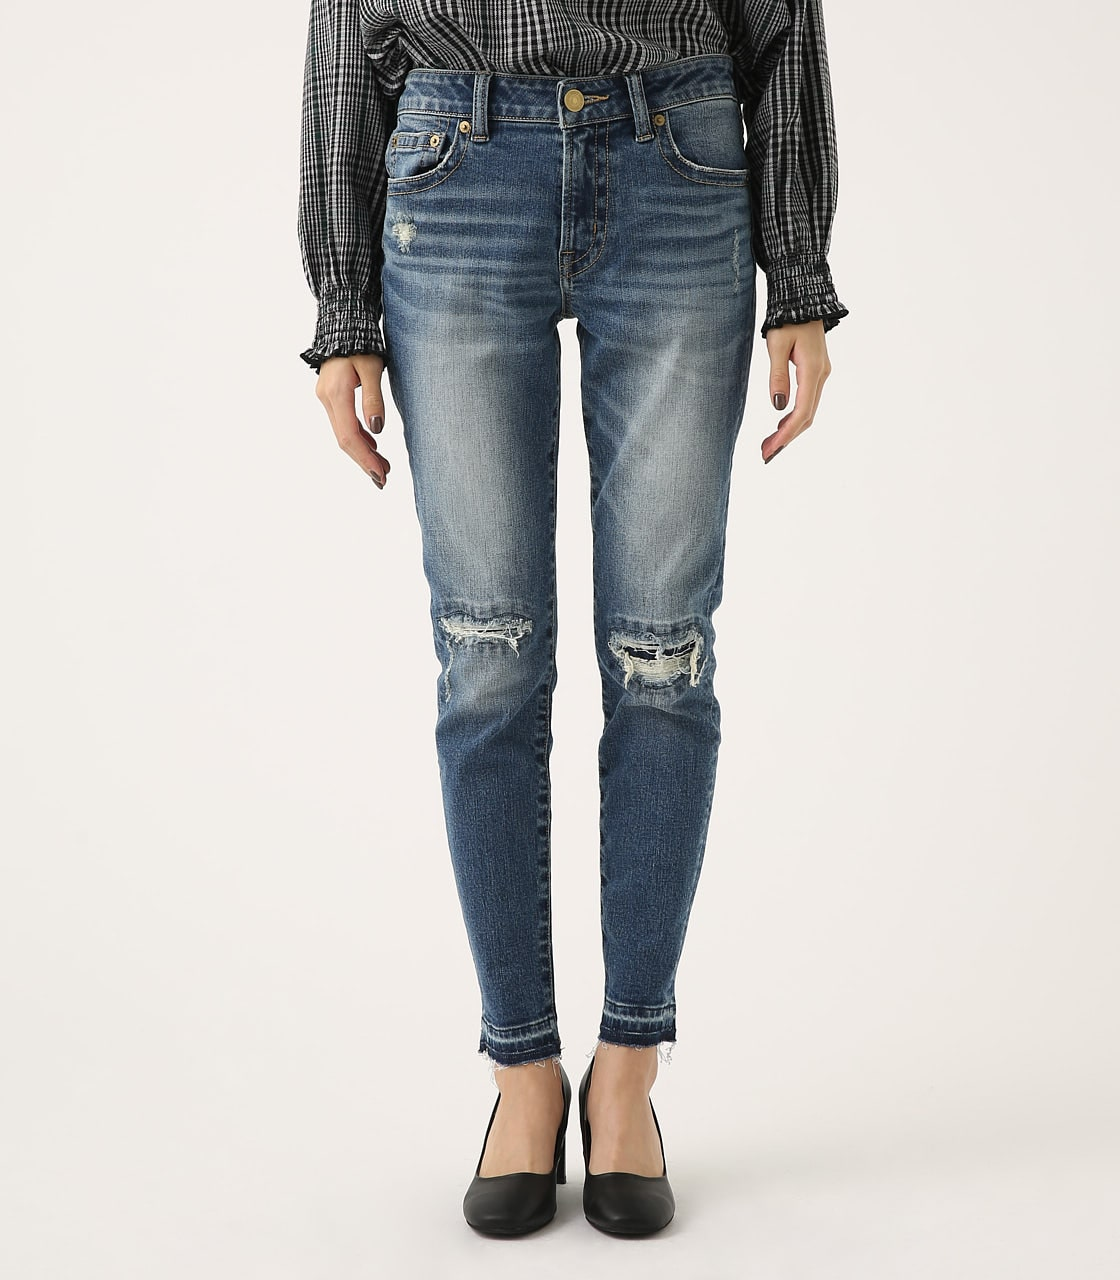 【AZUL BY MOUSSY】REPAIR DENIM SKINNY 詳細画像 BLU 5